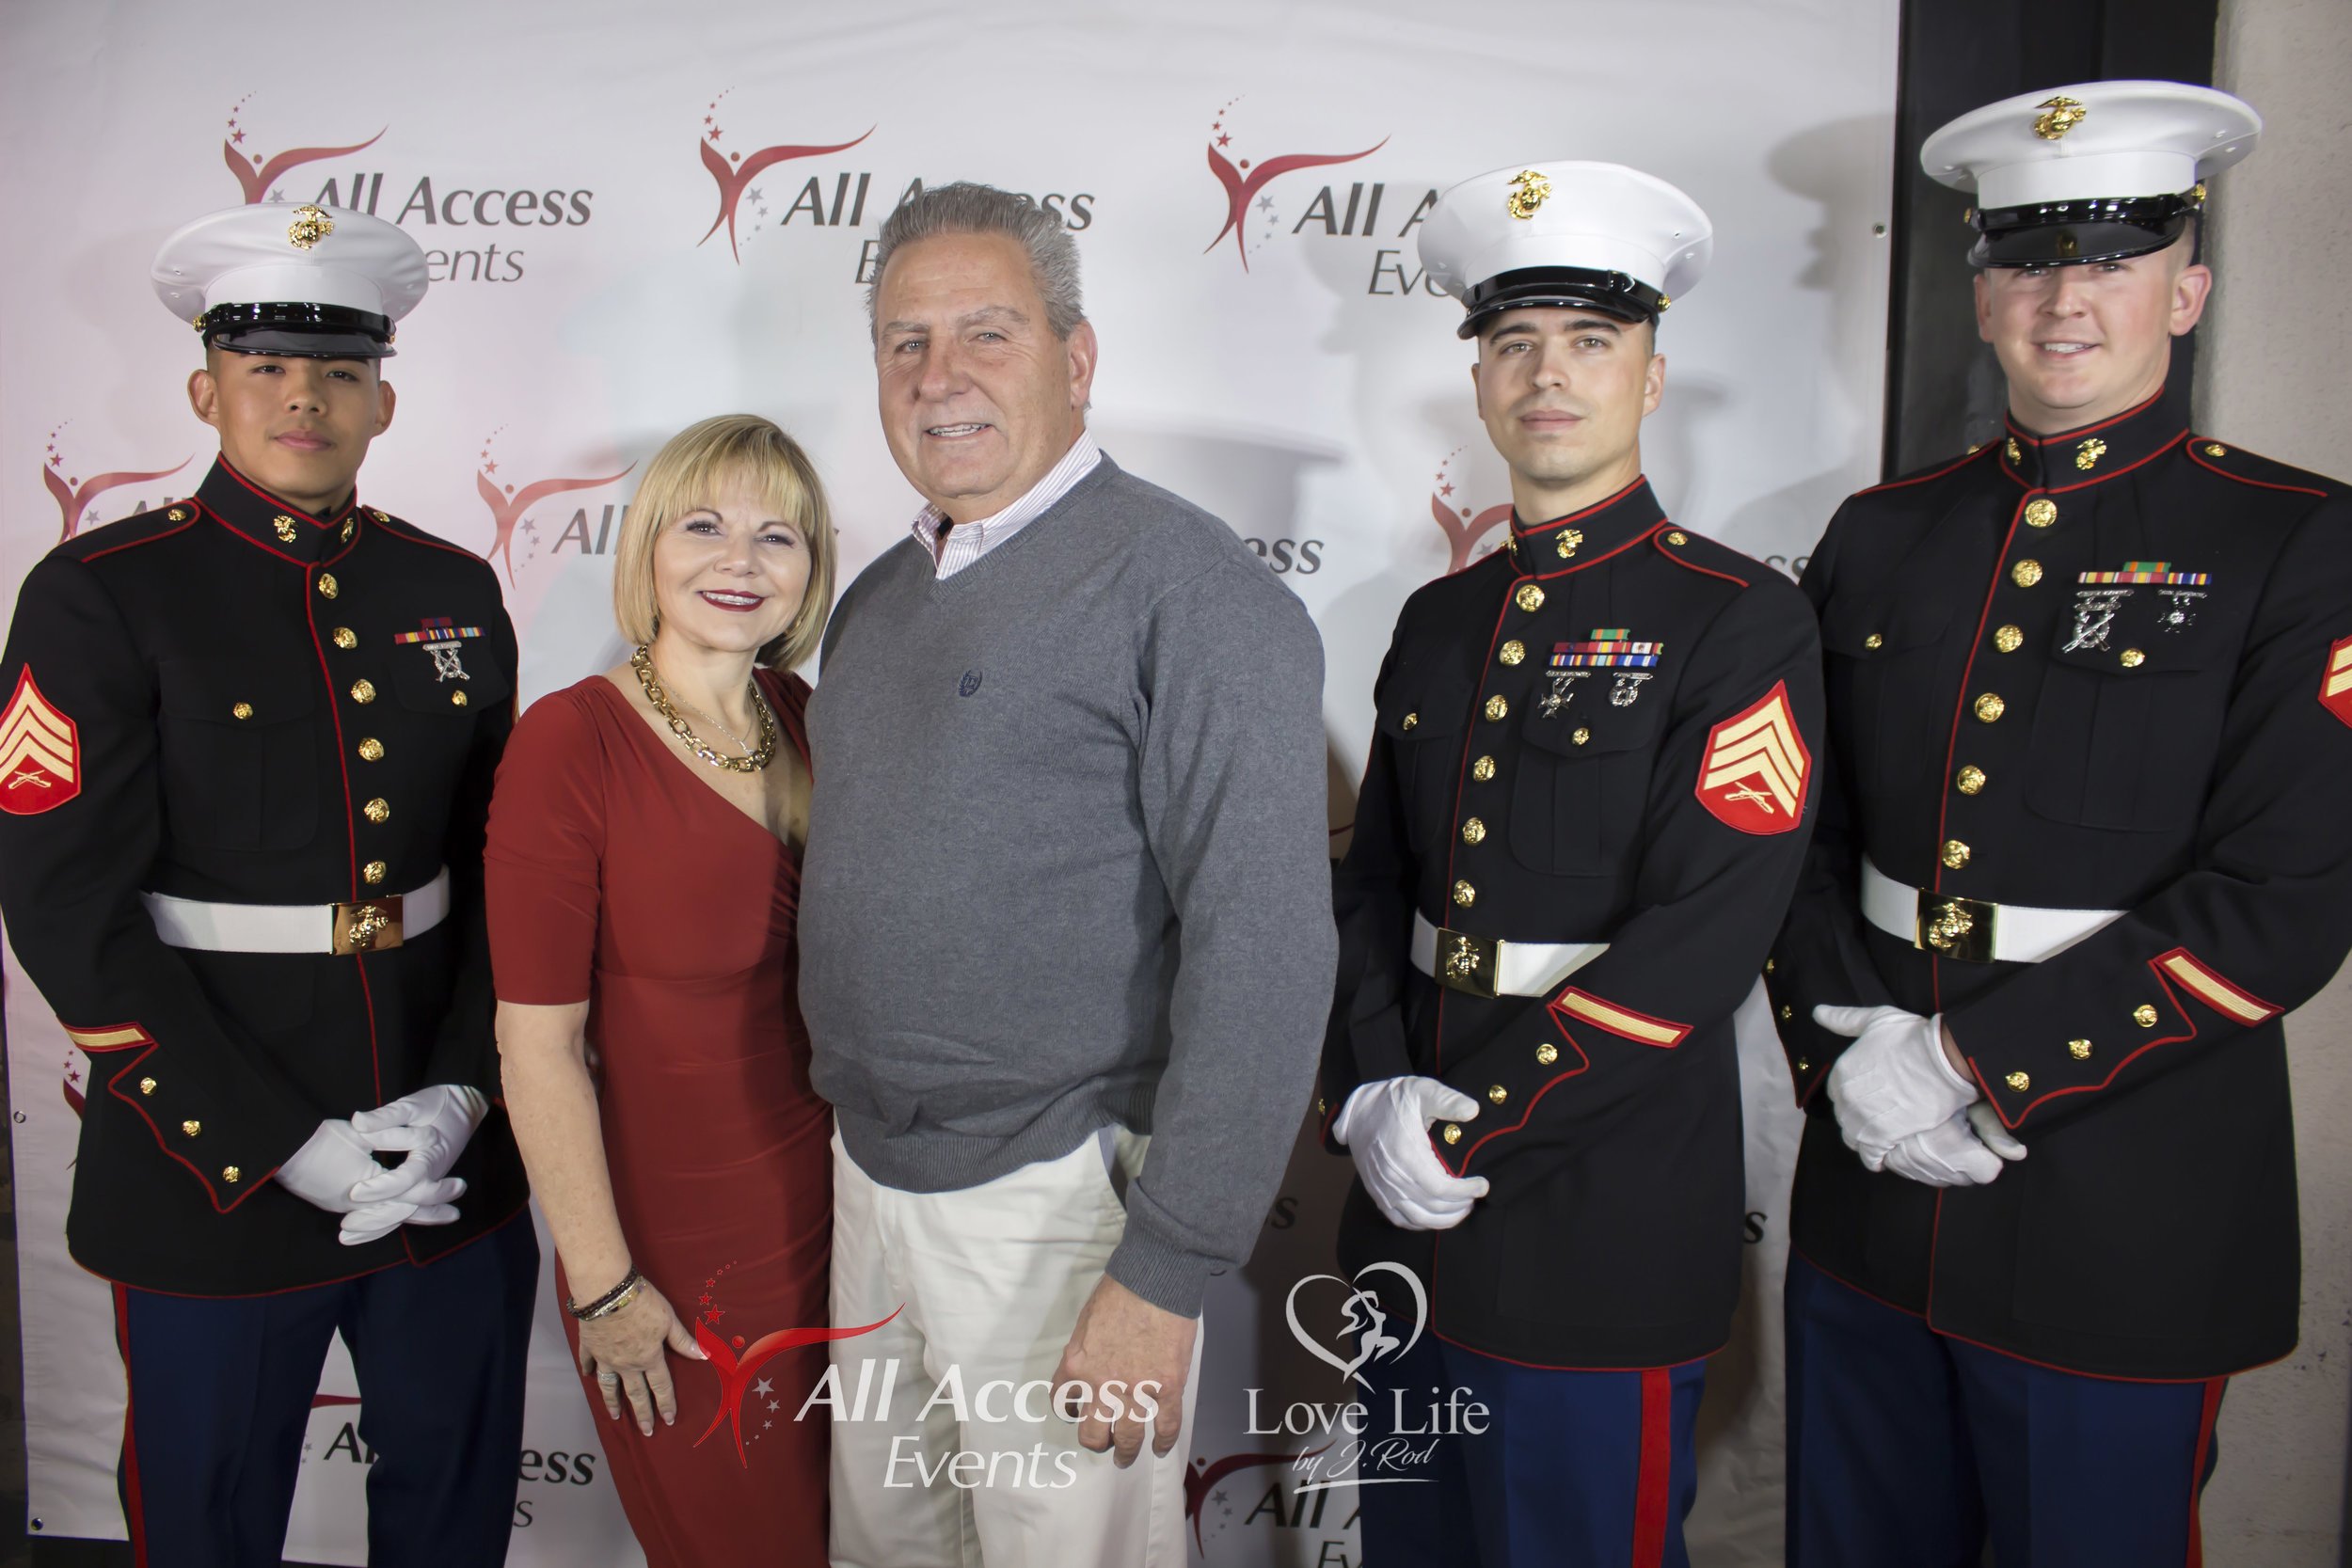 All Access Events Toy Drive - 12-13-17_102.jpg